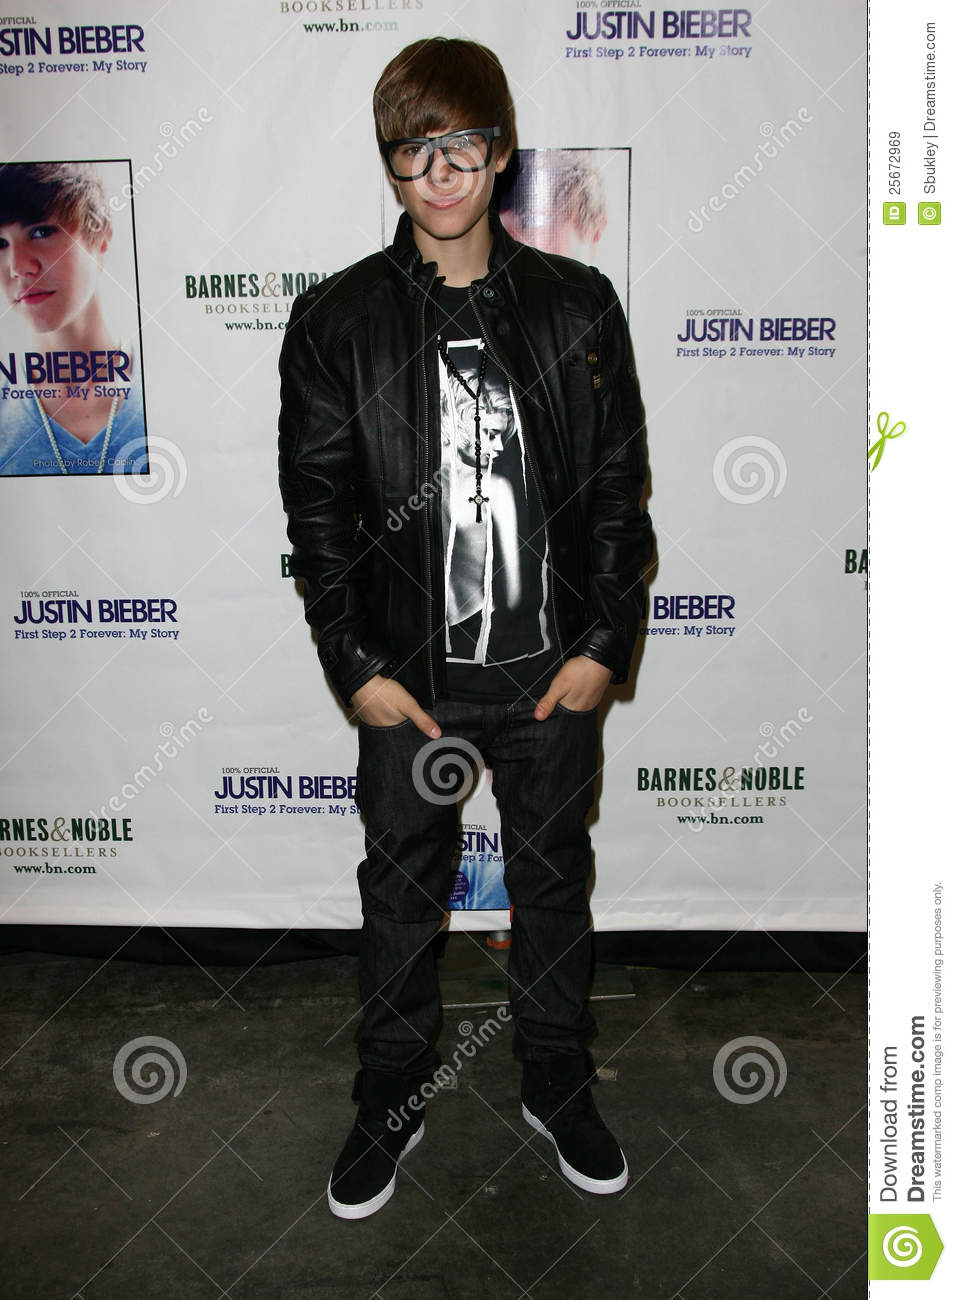 justin bieber first step 2 forever my story pdf